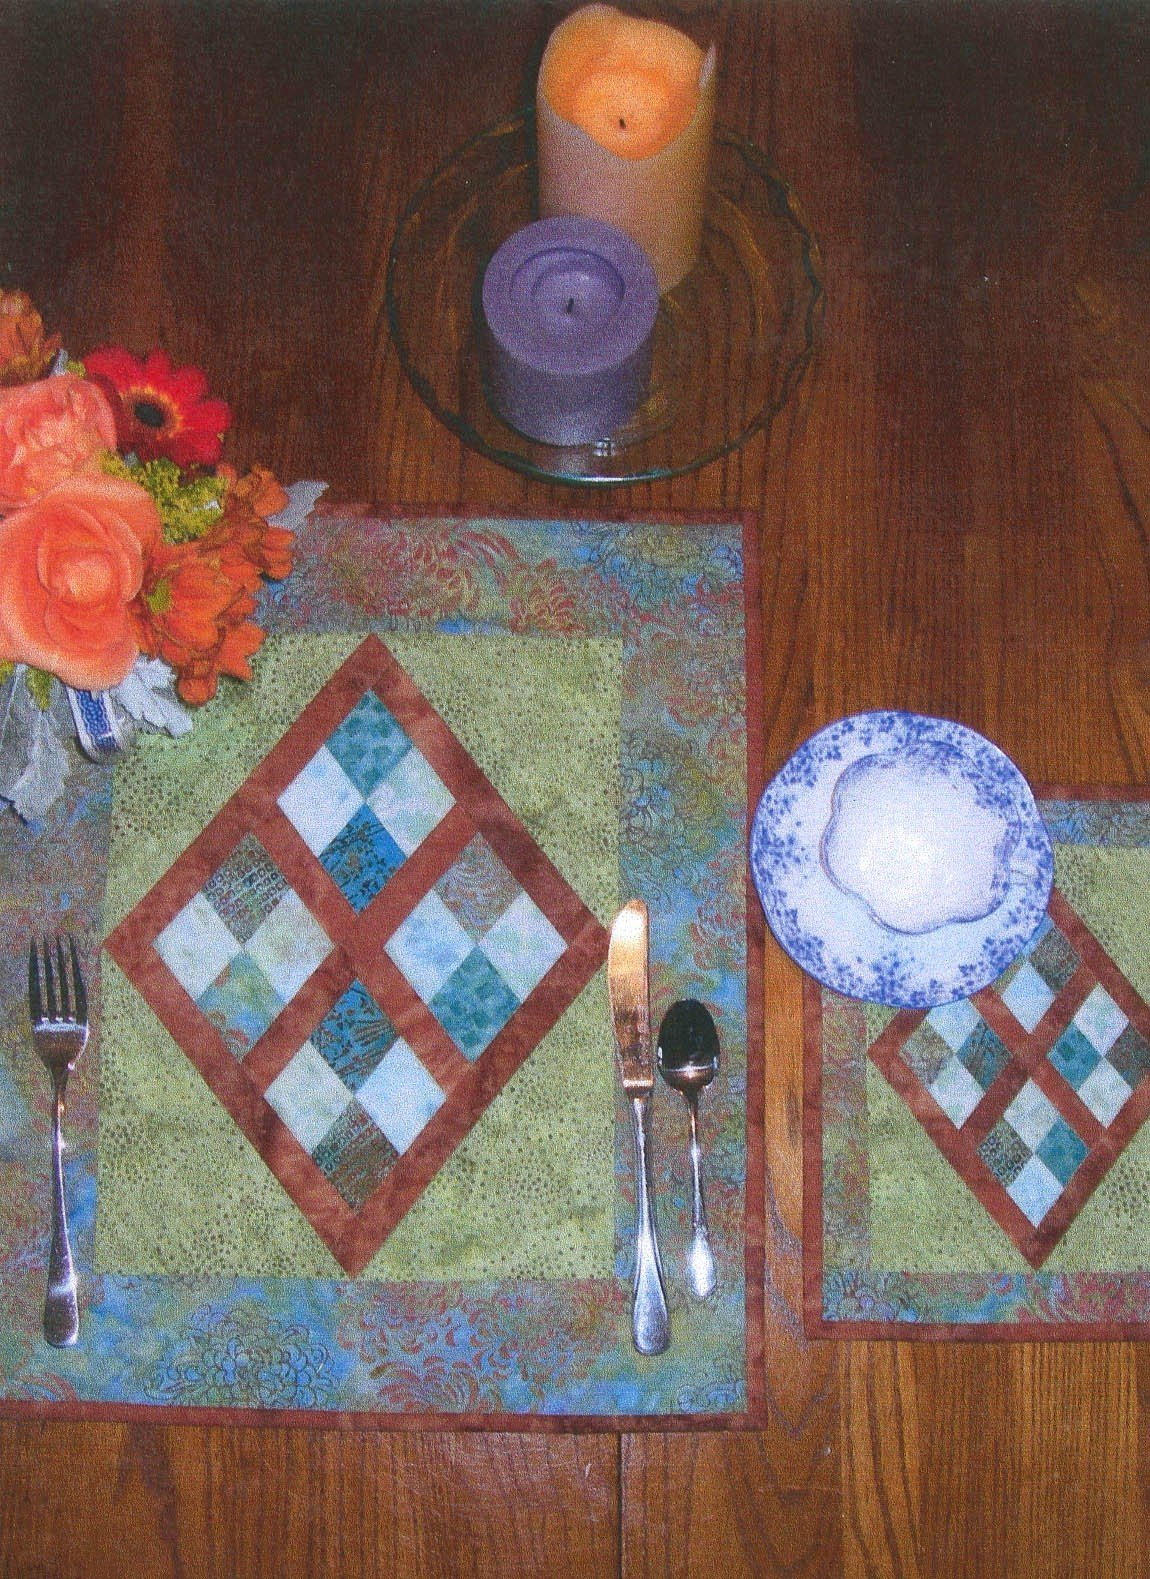 Four-Patch Placemats or Pillow